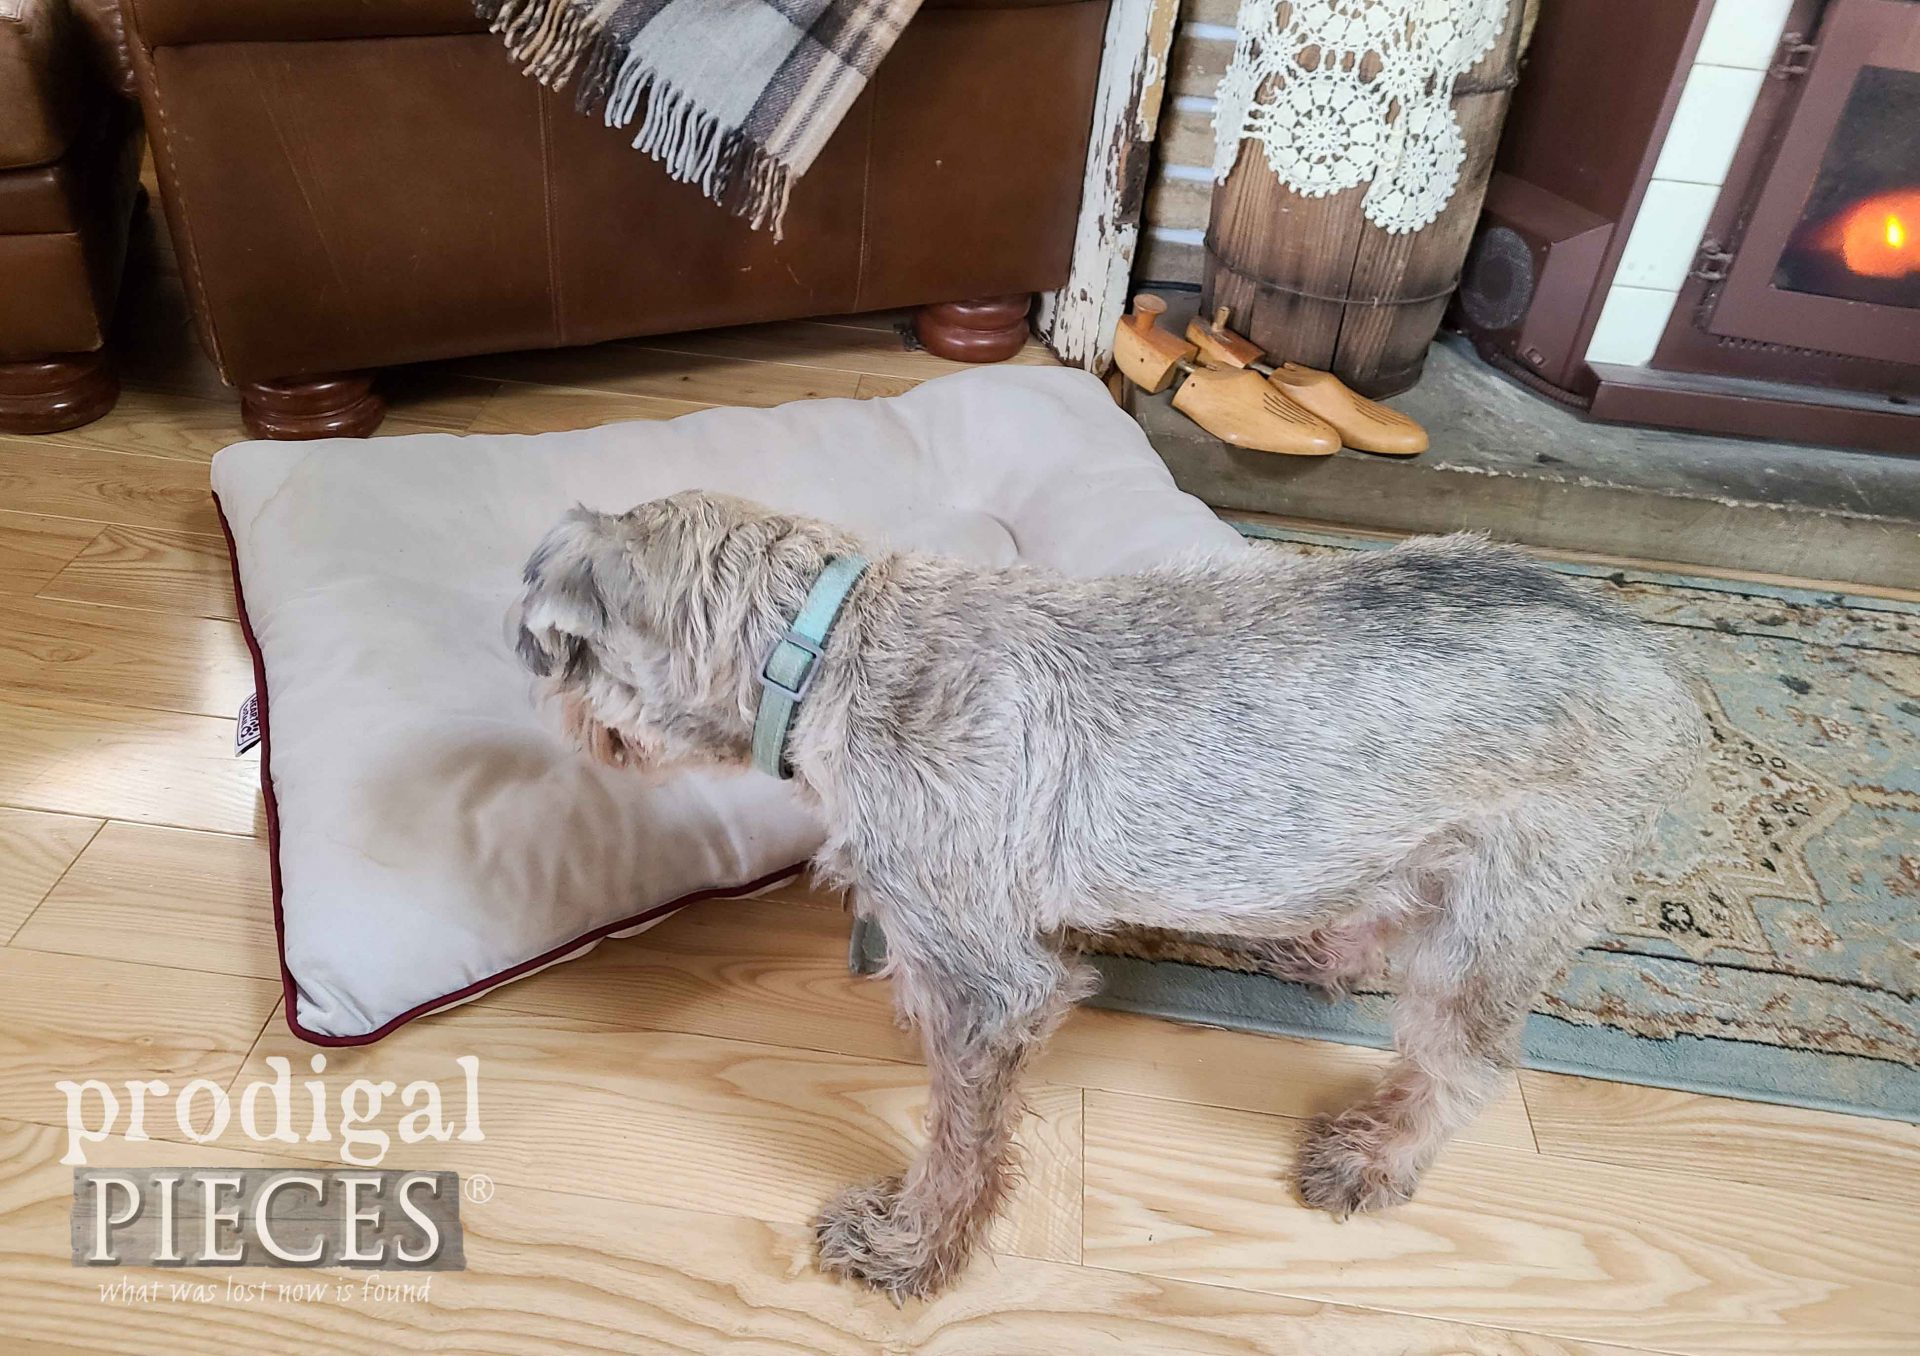 Miniature Schnauzer Pet Bed is Clean! By Prodigal Pieces | prodigalpieces.com #prodigalpieces #pets #animals